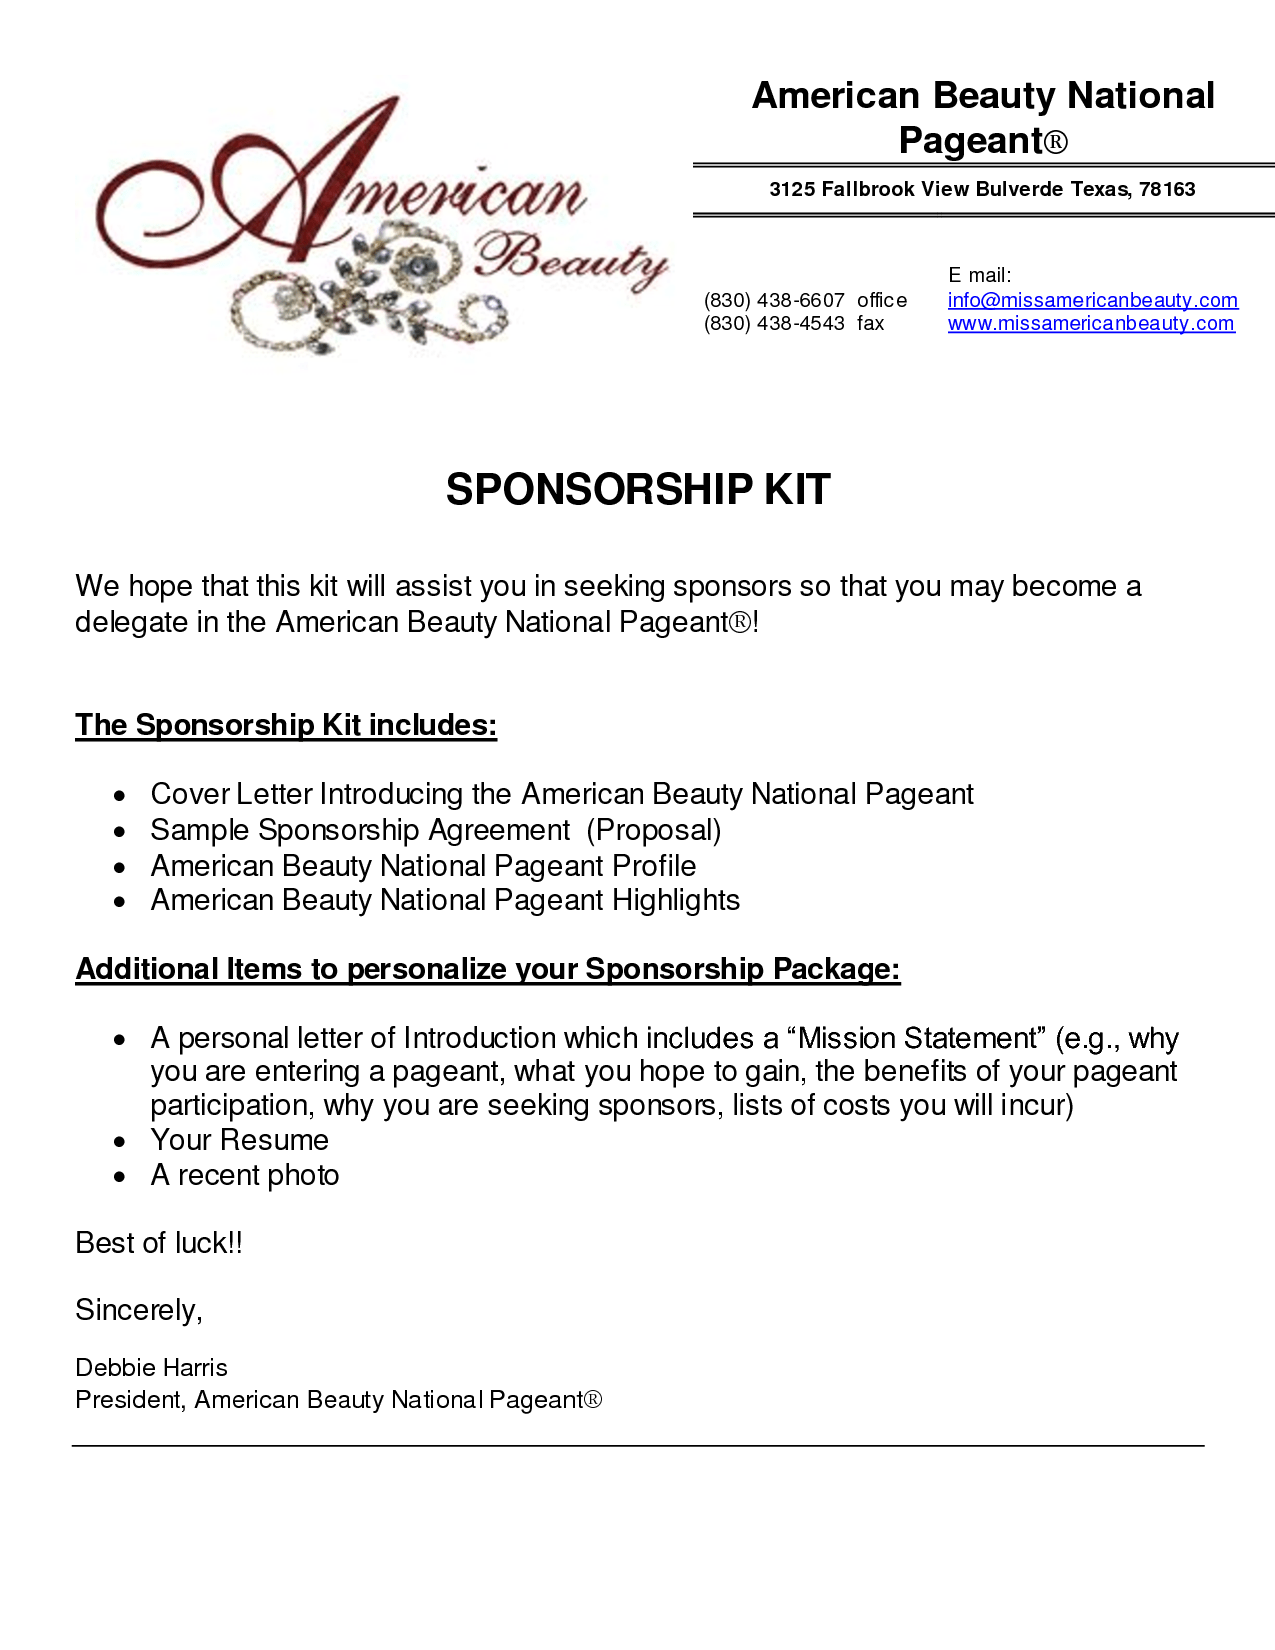 6 Sponsorship Proposal Templates Excel PDF Formats – Sponsorship Proposal Template